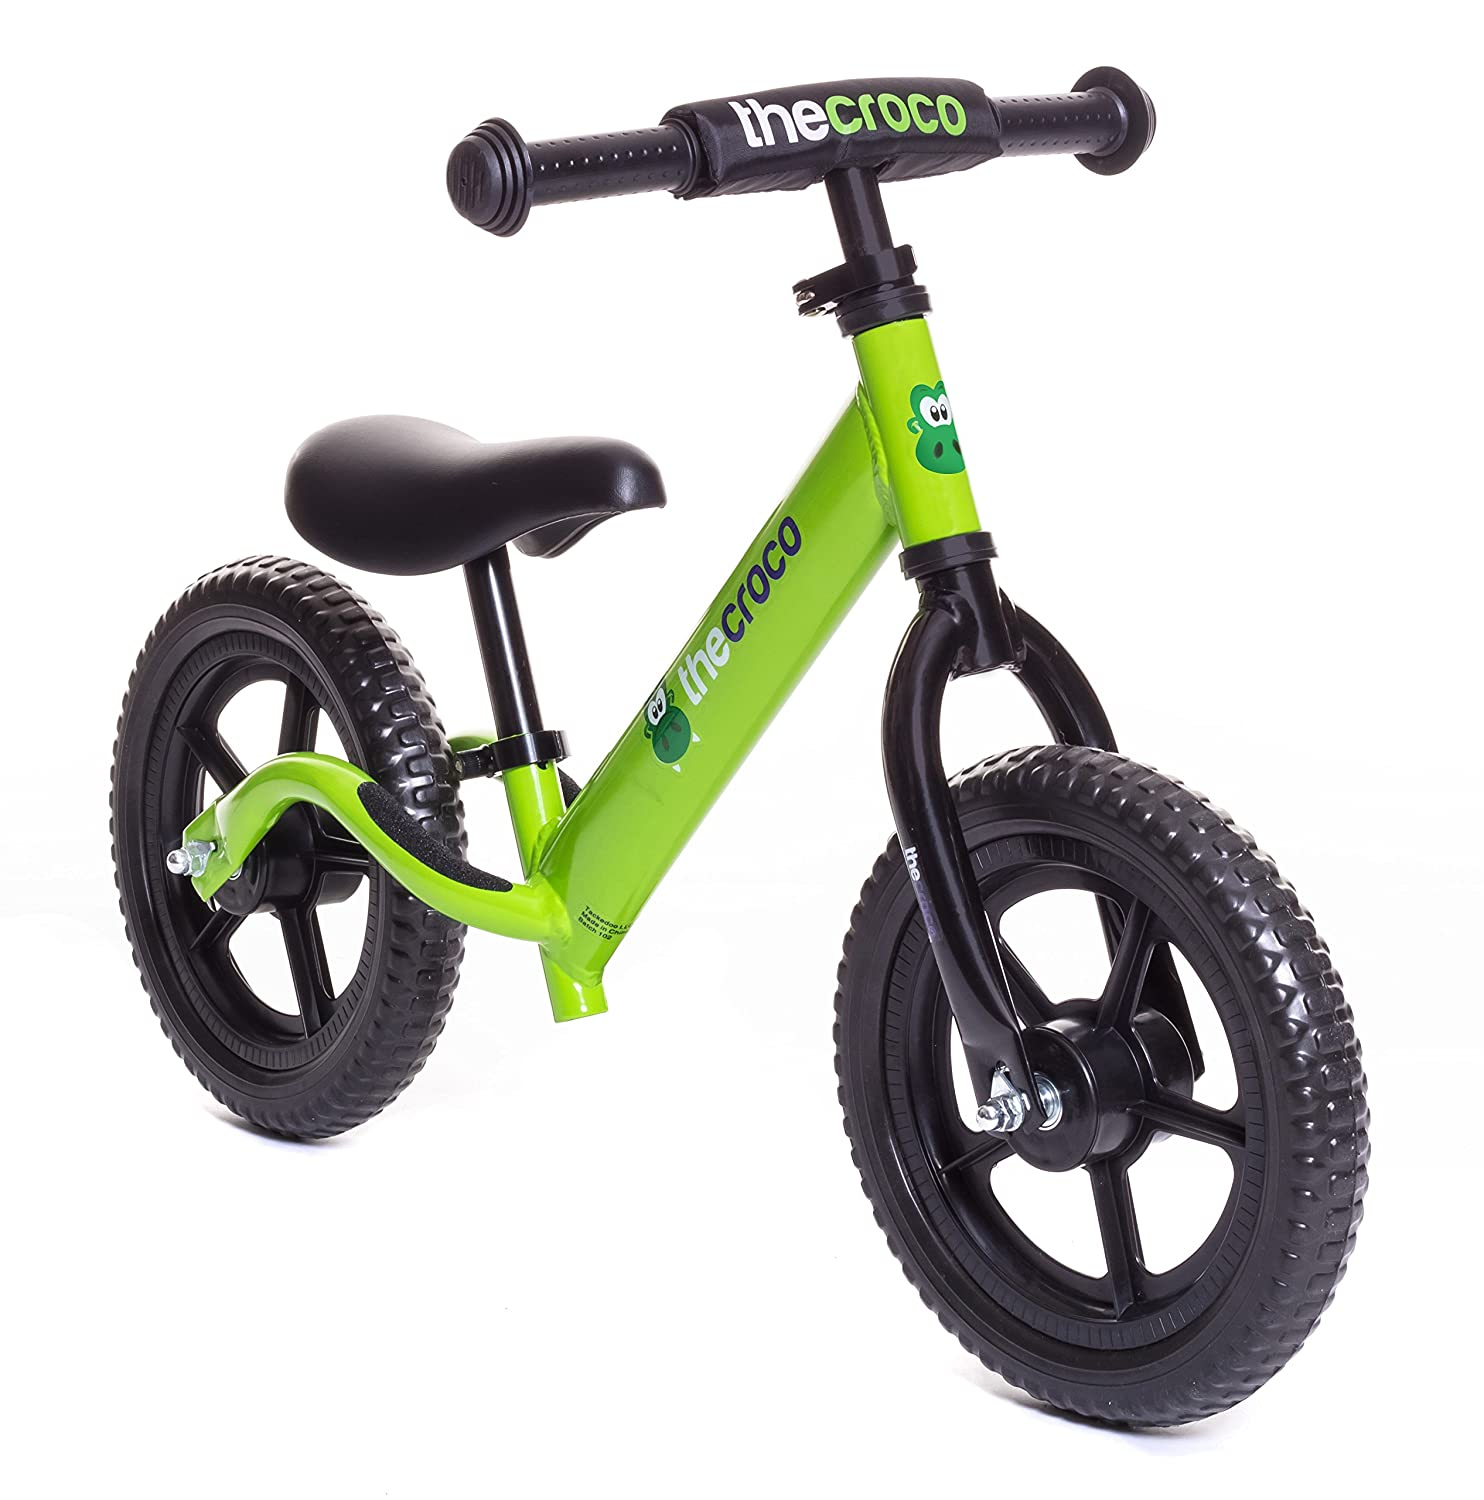 TheCroco Premium Ultra Light Balance Bike Only 4 lbs and Unrivaled Features